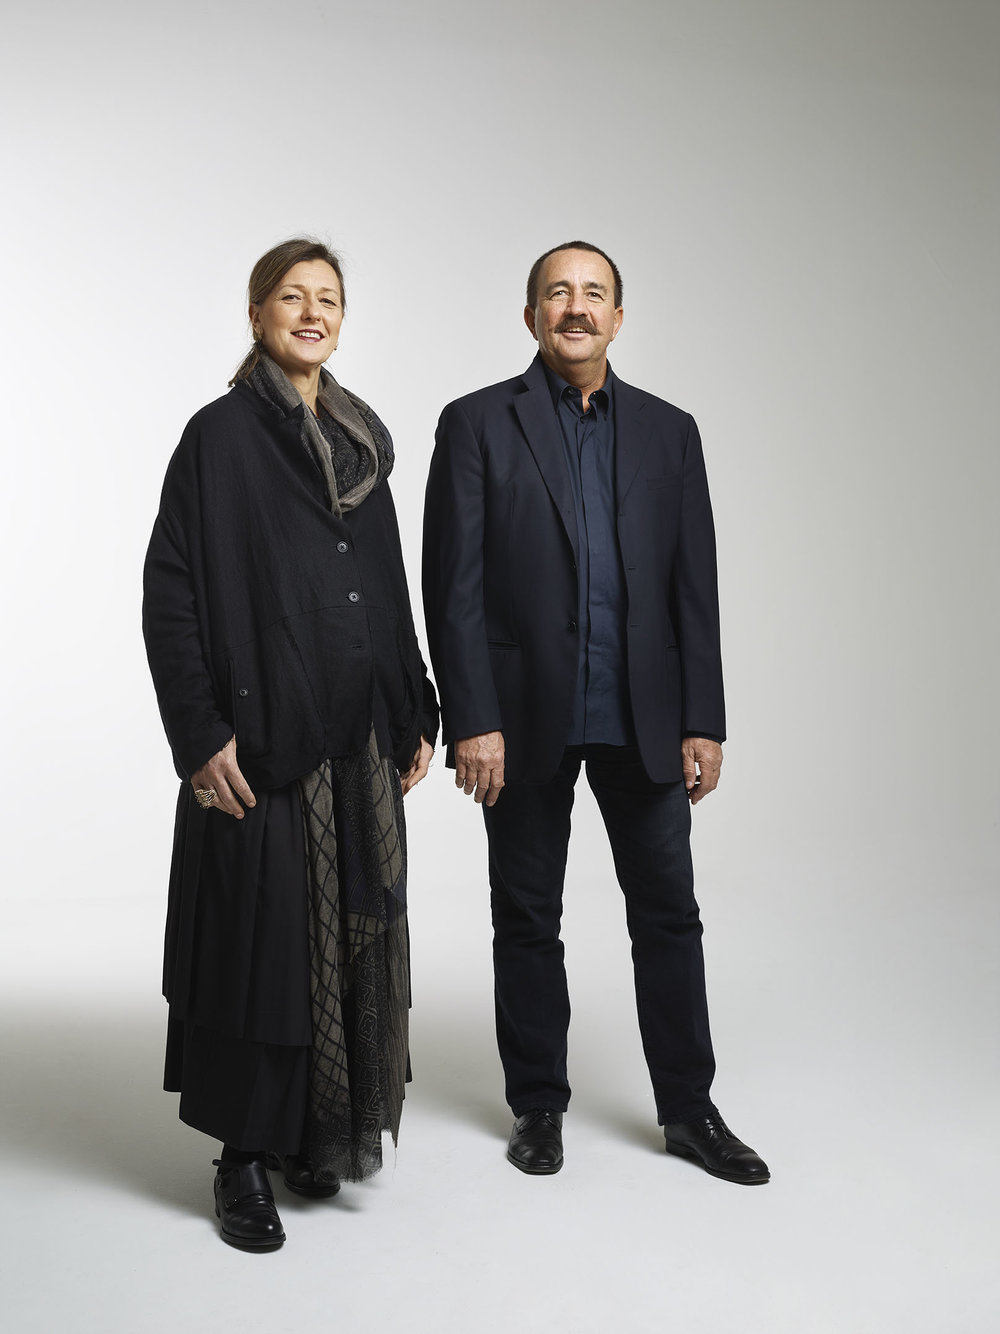 Monica and Valerio Mazzei, founders of the Edra furniture brand in 1987 and supporters of some of the most innovative design thinkers today. Photography © Edra.